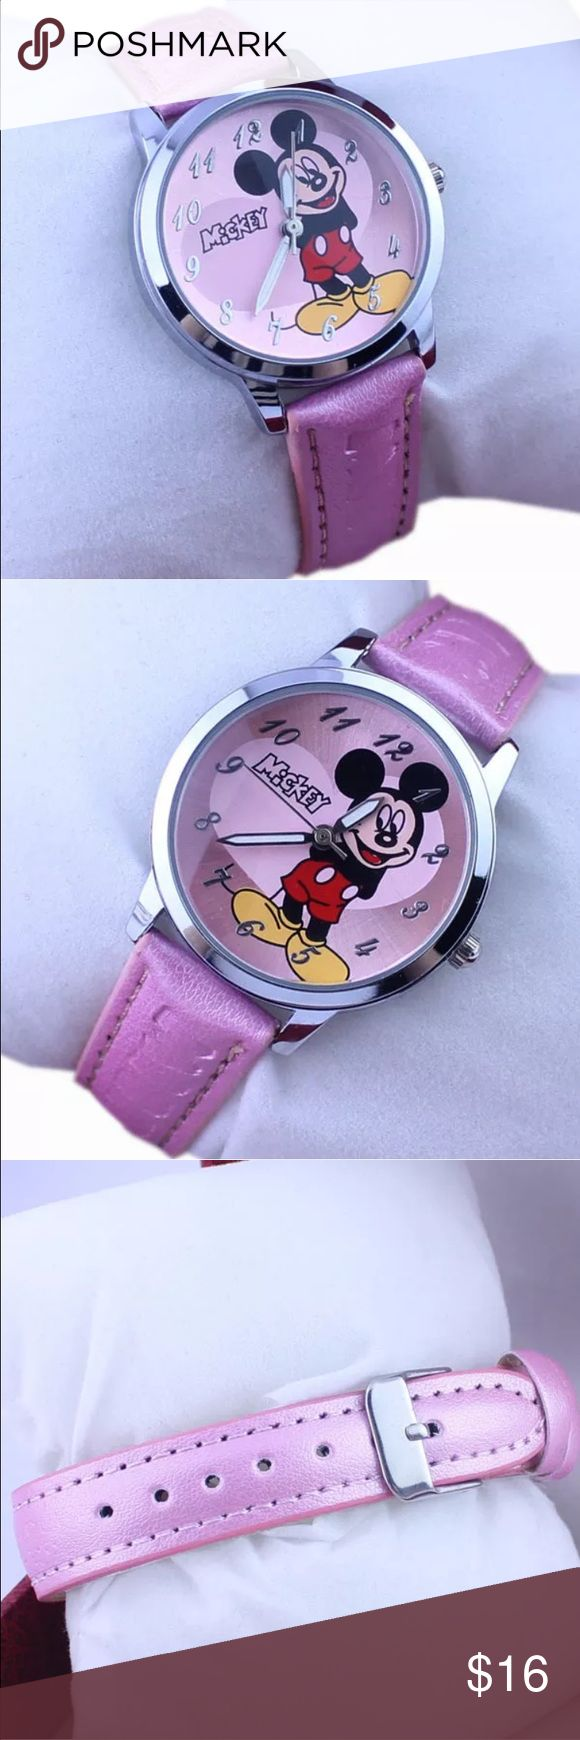 New Mickey Mouse watch Cute Mickey Mouse watch with purple band Accessories Watches